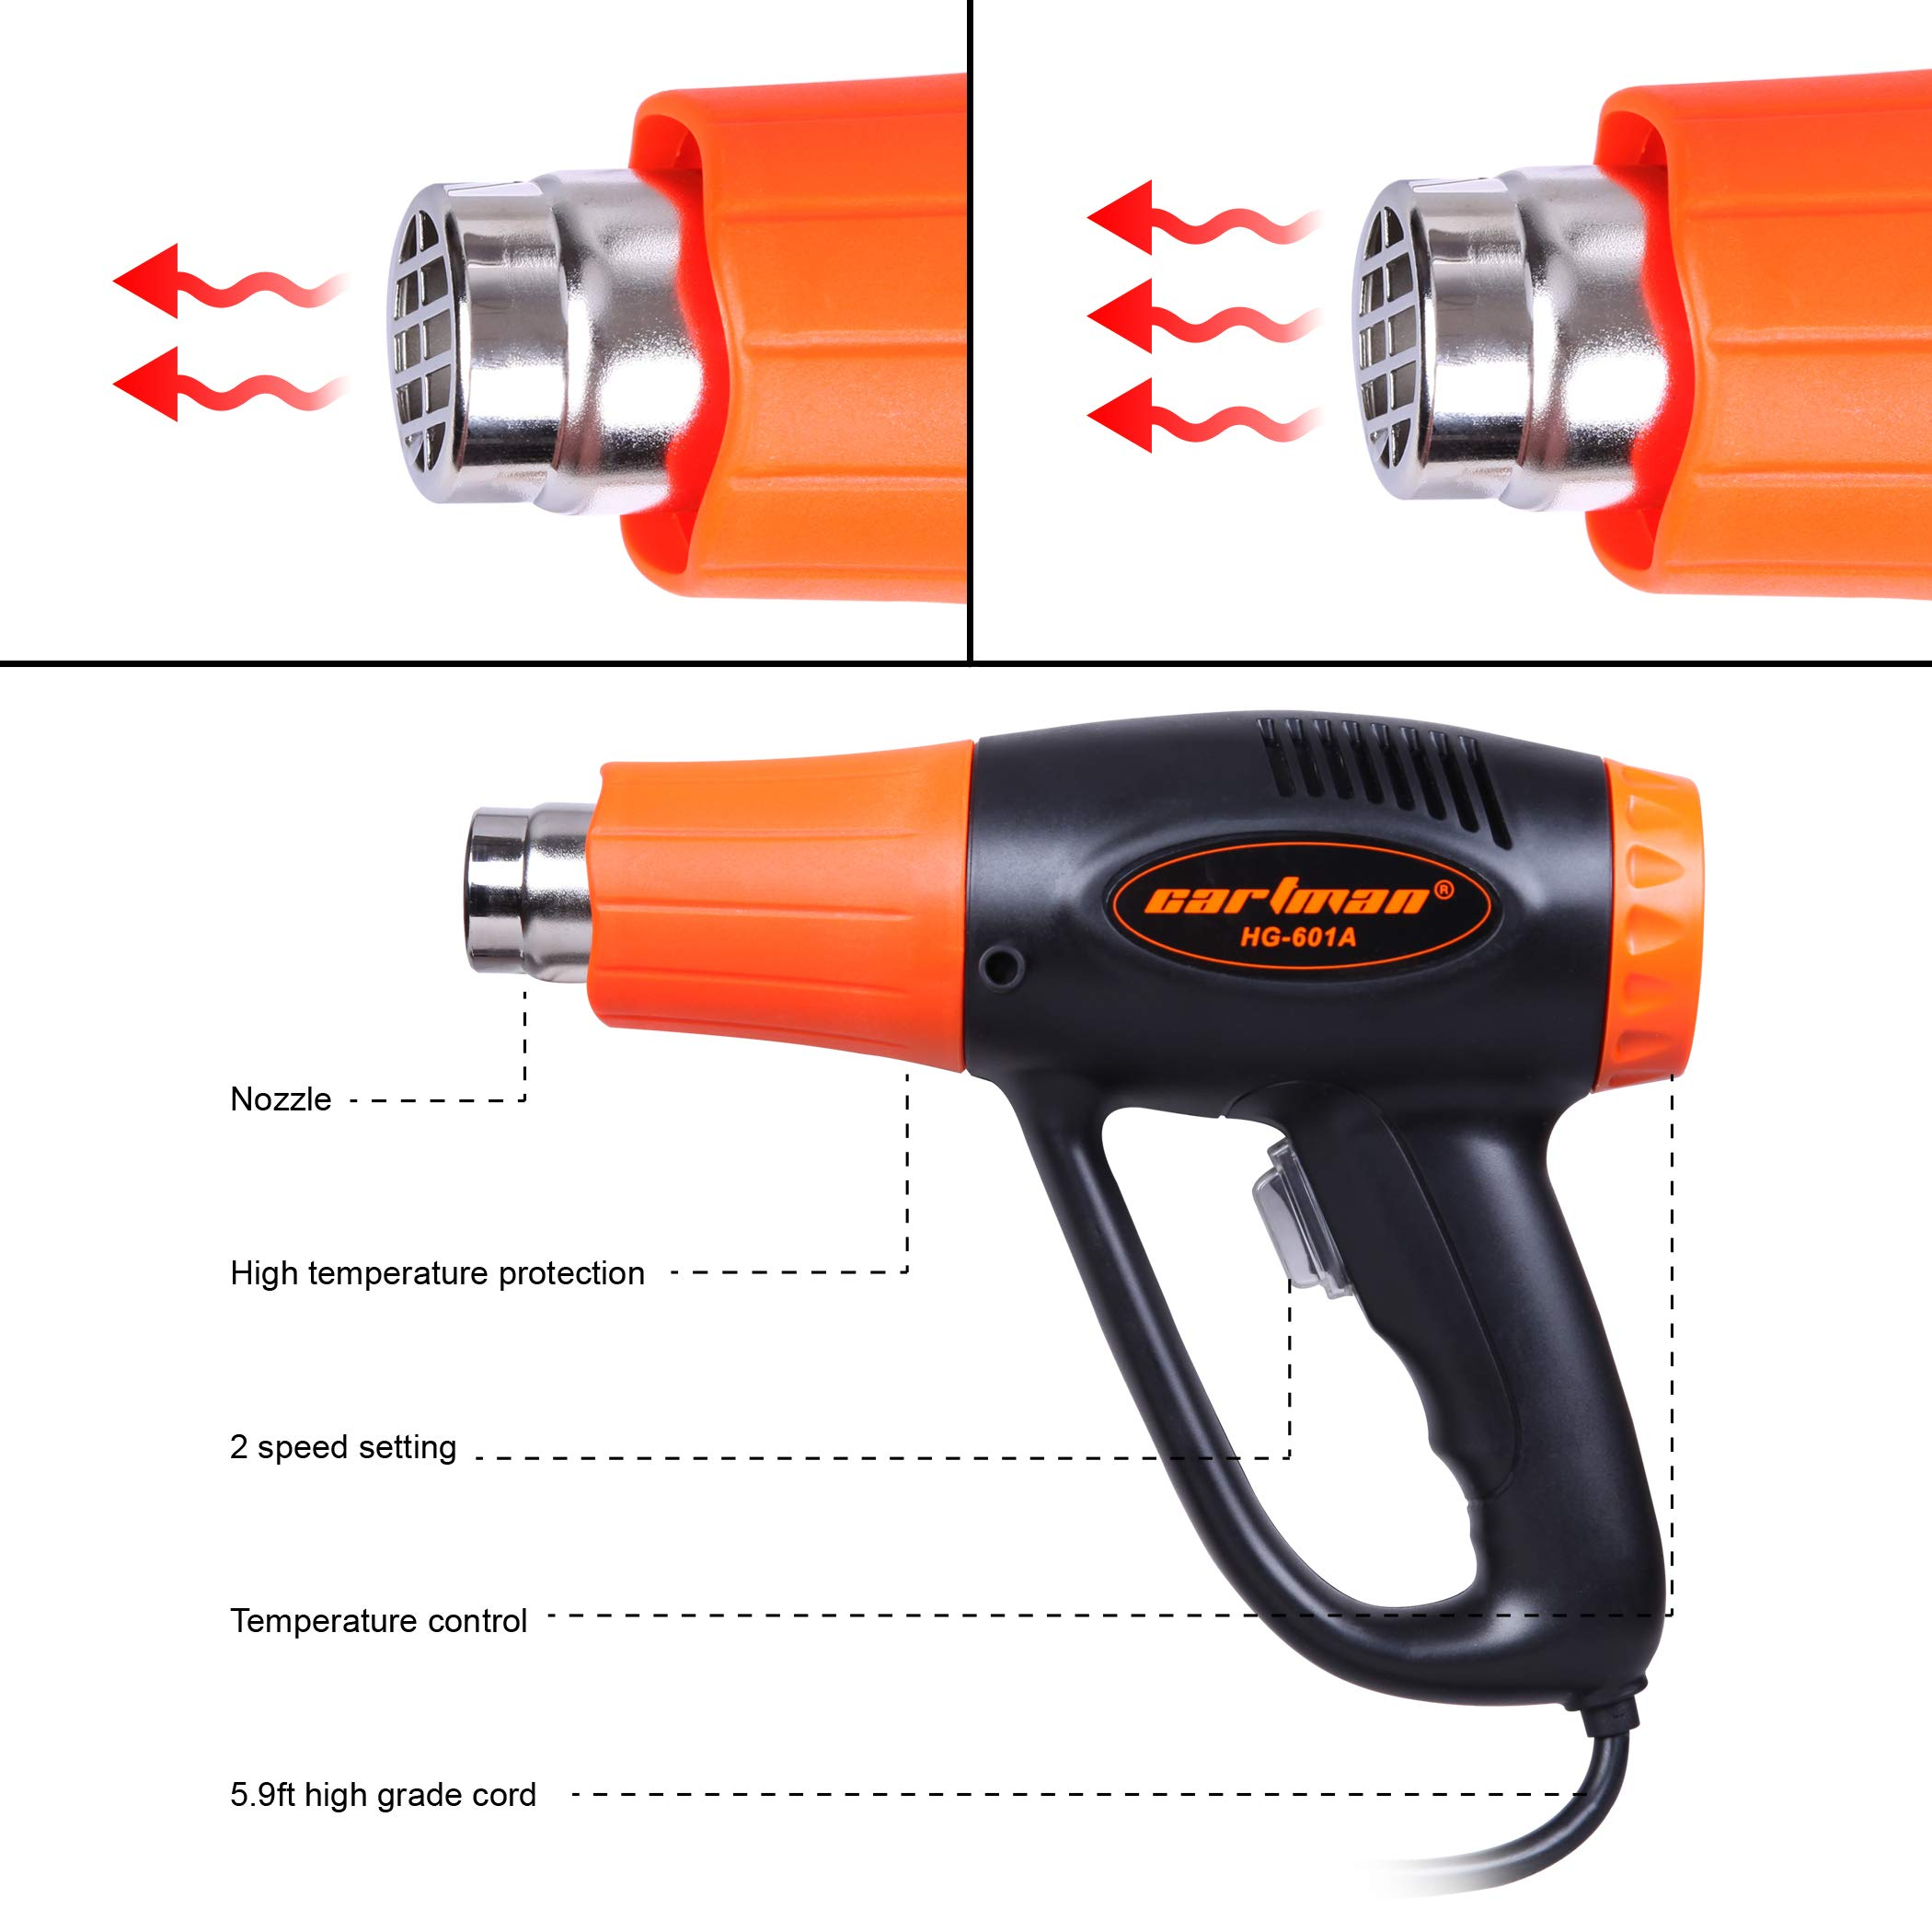 CARTMAN Heat Gun, 1500W Hot Air Gun, Variable Temp Settings 140-1022℉, With 4 Nozzles by CARTMAN (Image #3)